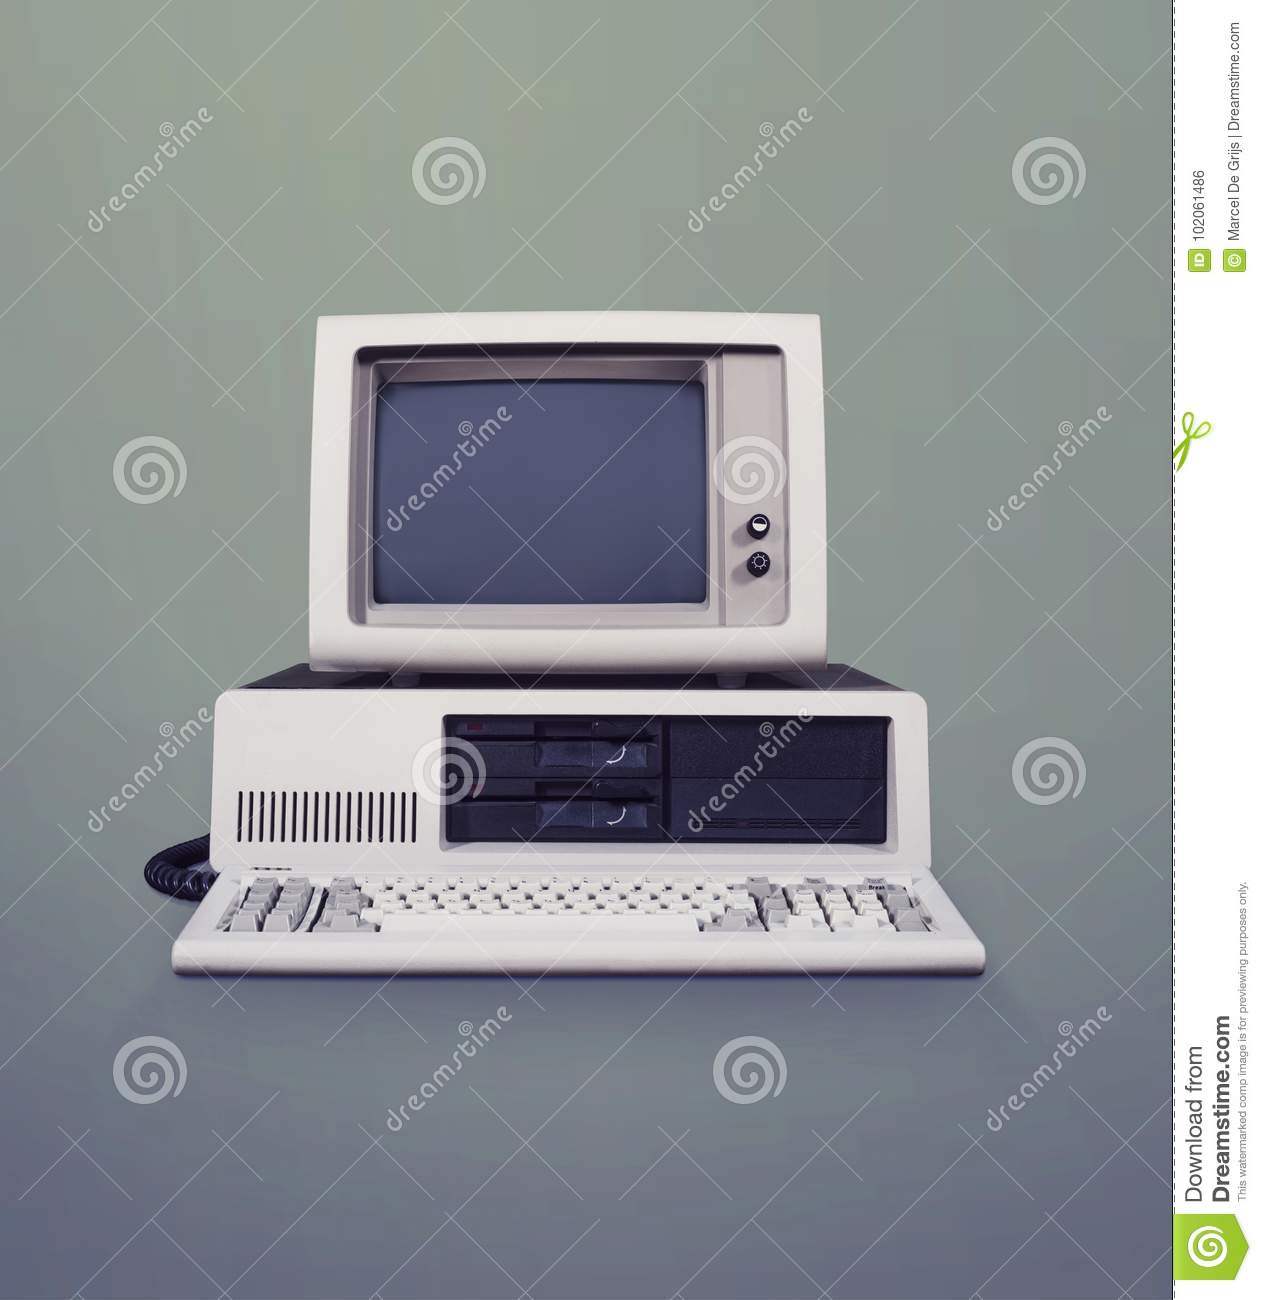 dos computer stock photo image of copy floppy template 102061486